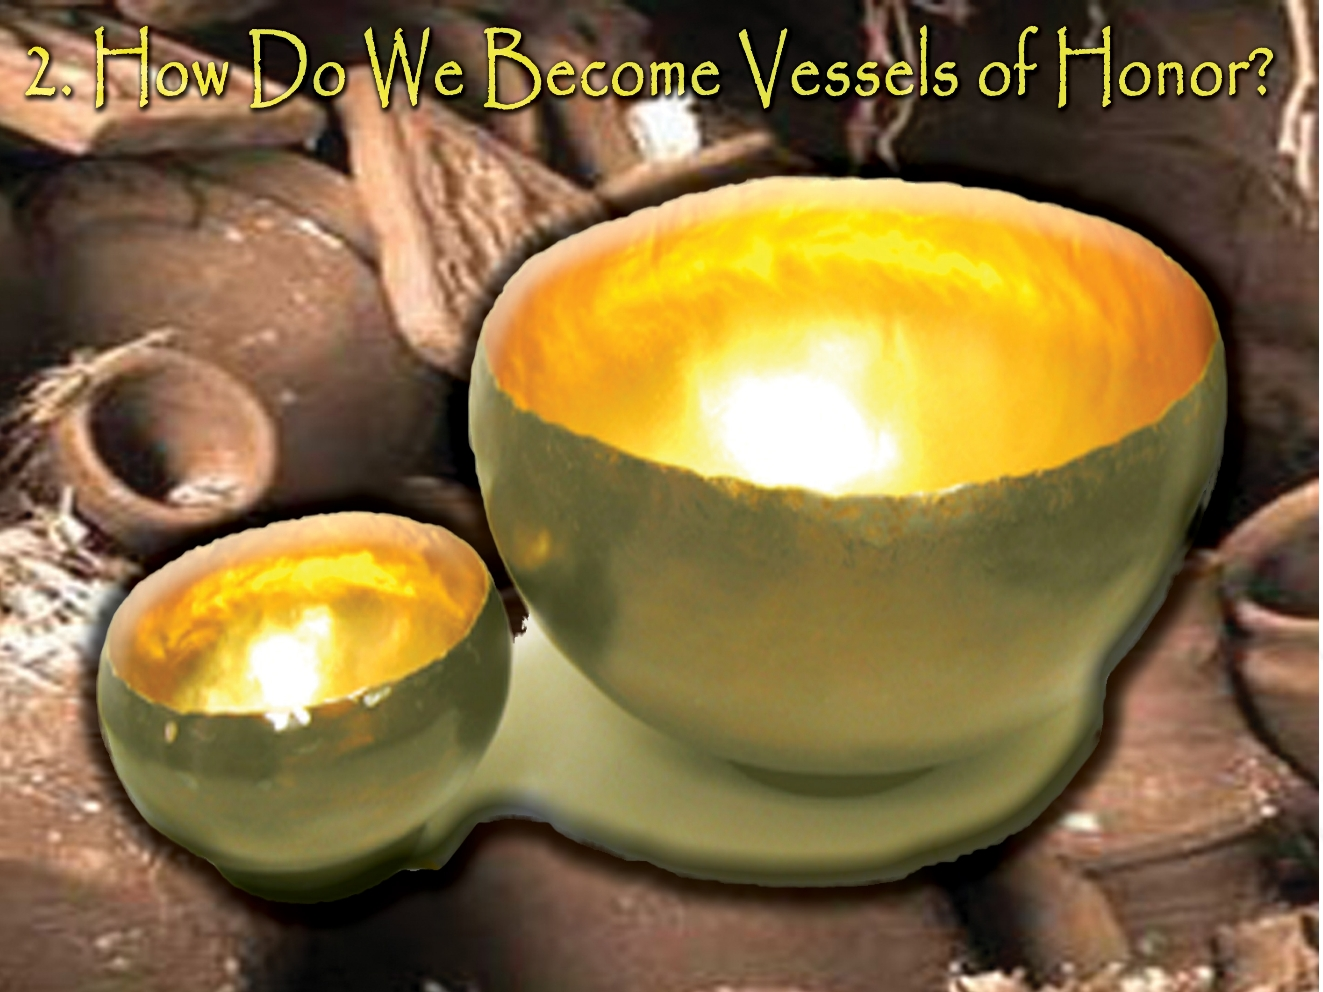 How Do We Become Vessels of Honor